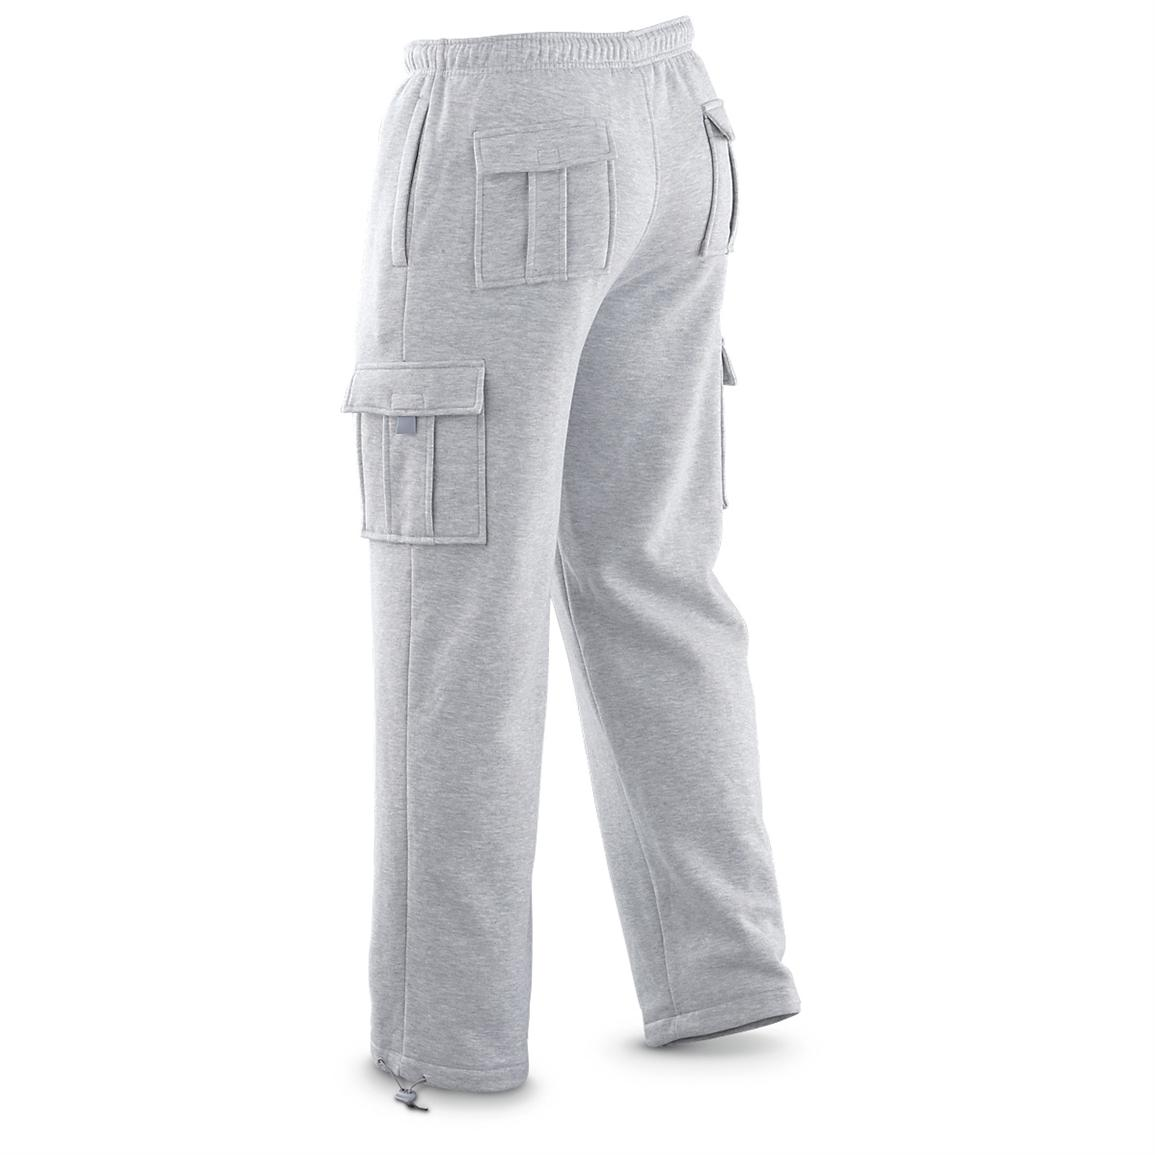 Shop Hanes Sport Ultimate Cotton Mens Sweatpants with Pockets. Heavyweight fleece is our warmest. Has elastic waistband with drawcord. Message Dialog This area is to show errors (if any) caused due to user input/ or system errors. Close. Display Update Message This area is /5(98).